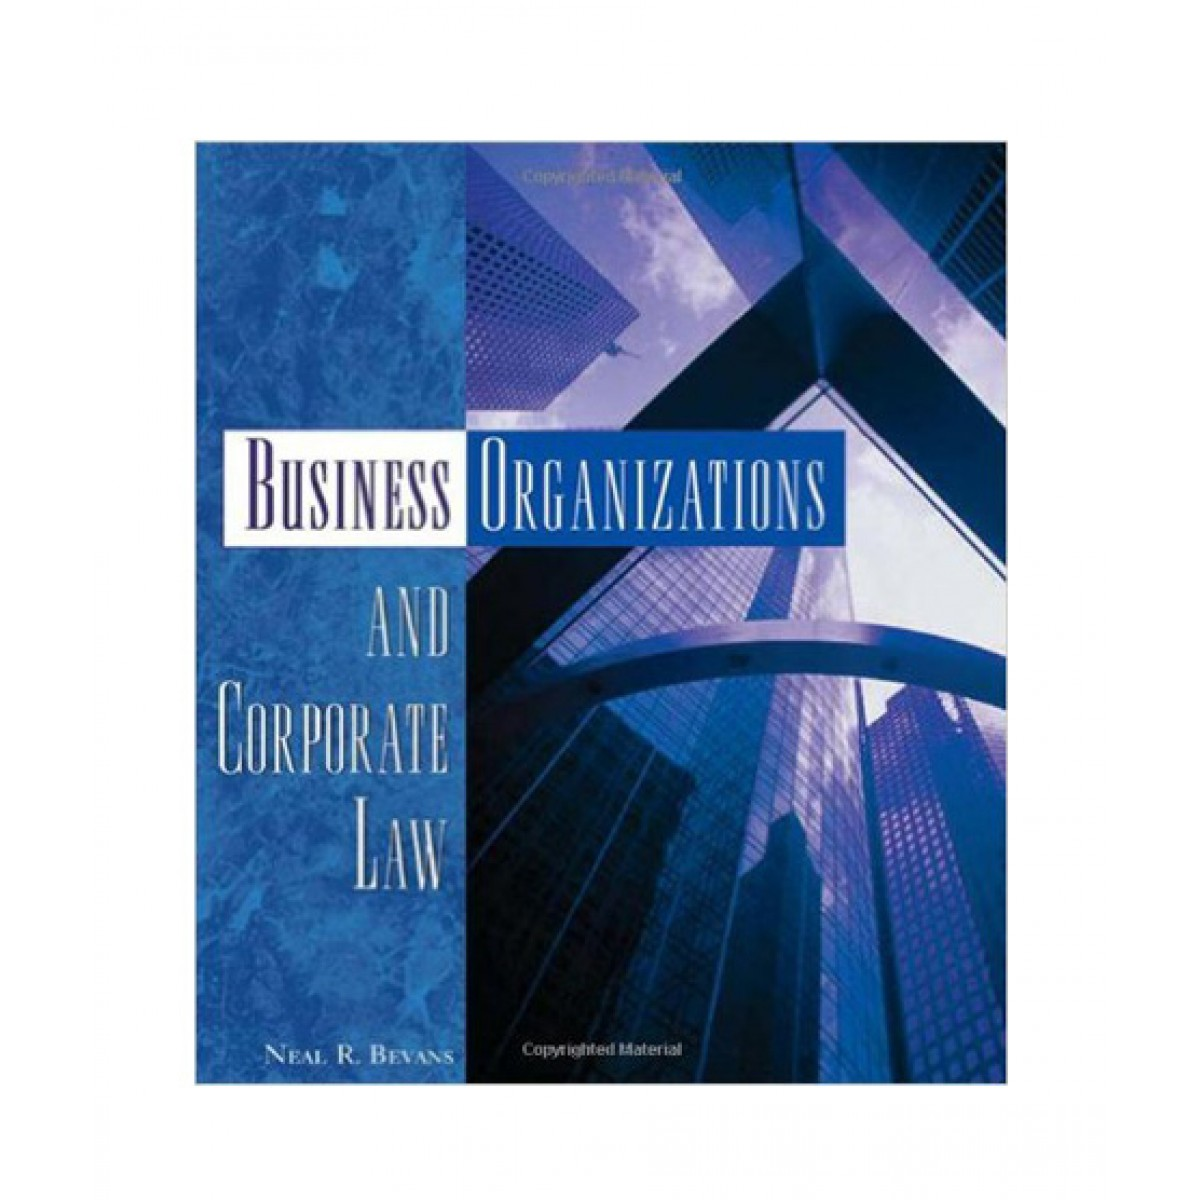 Business Organizations and Corporate Law Book 1st Edition